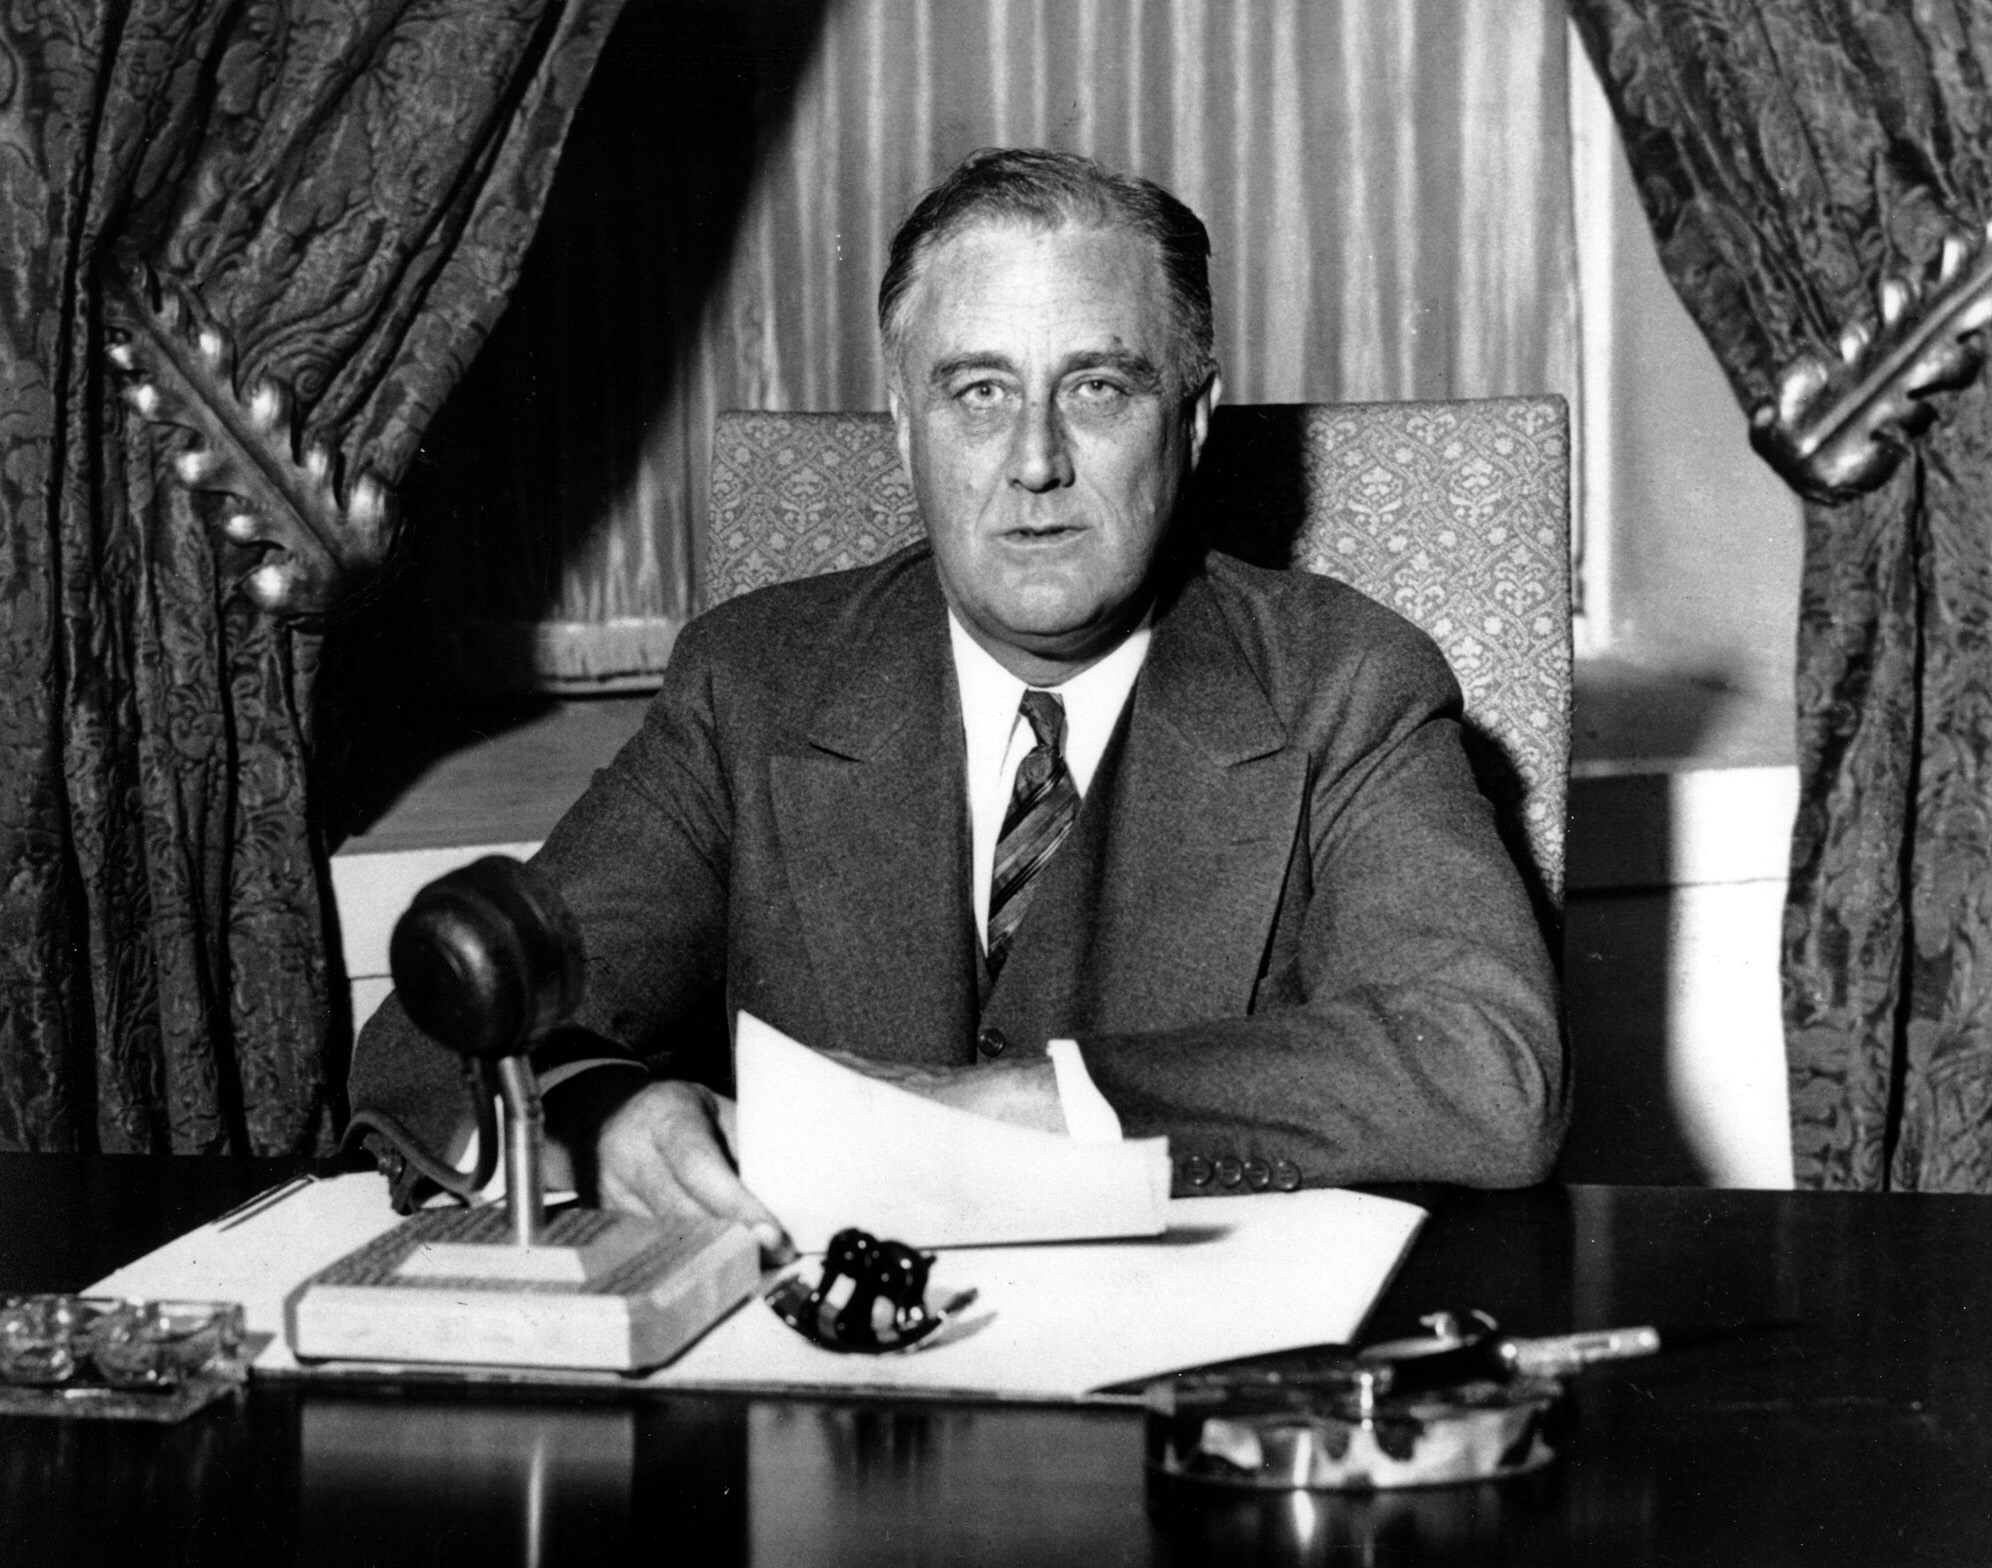 """President Franklin Roosevelt began making the informal radio addresses to the nation called """"Fireside Chats"""" on Sunday March during the Great Depression."""